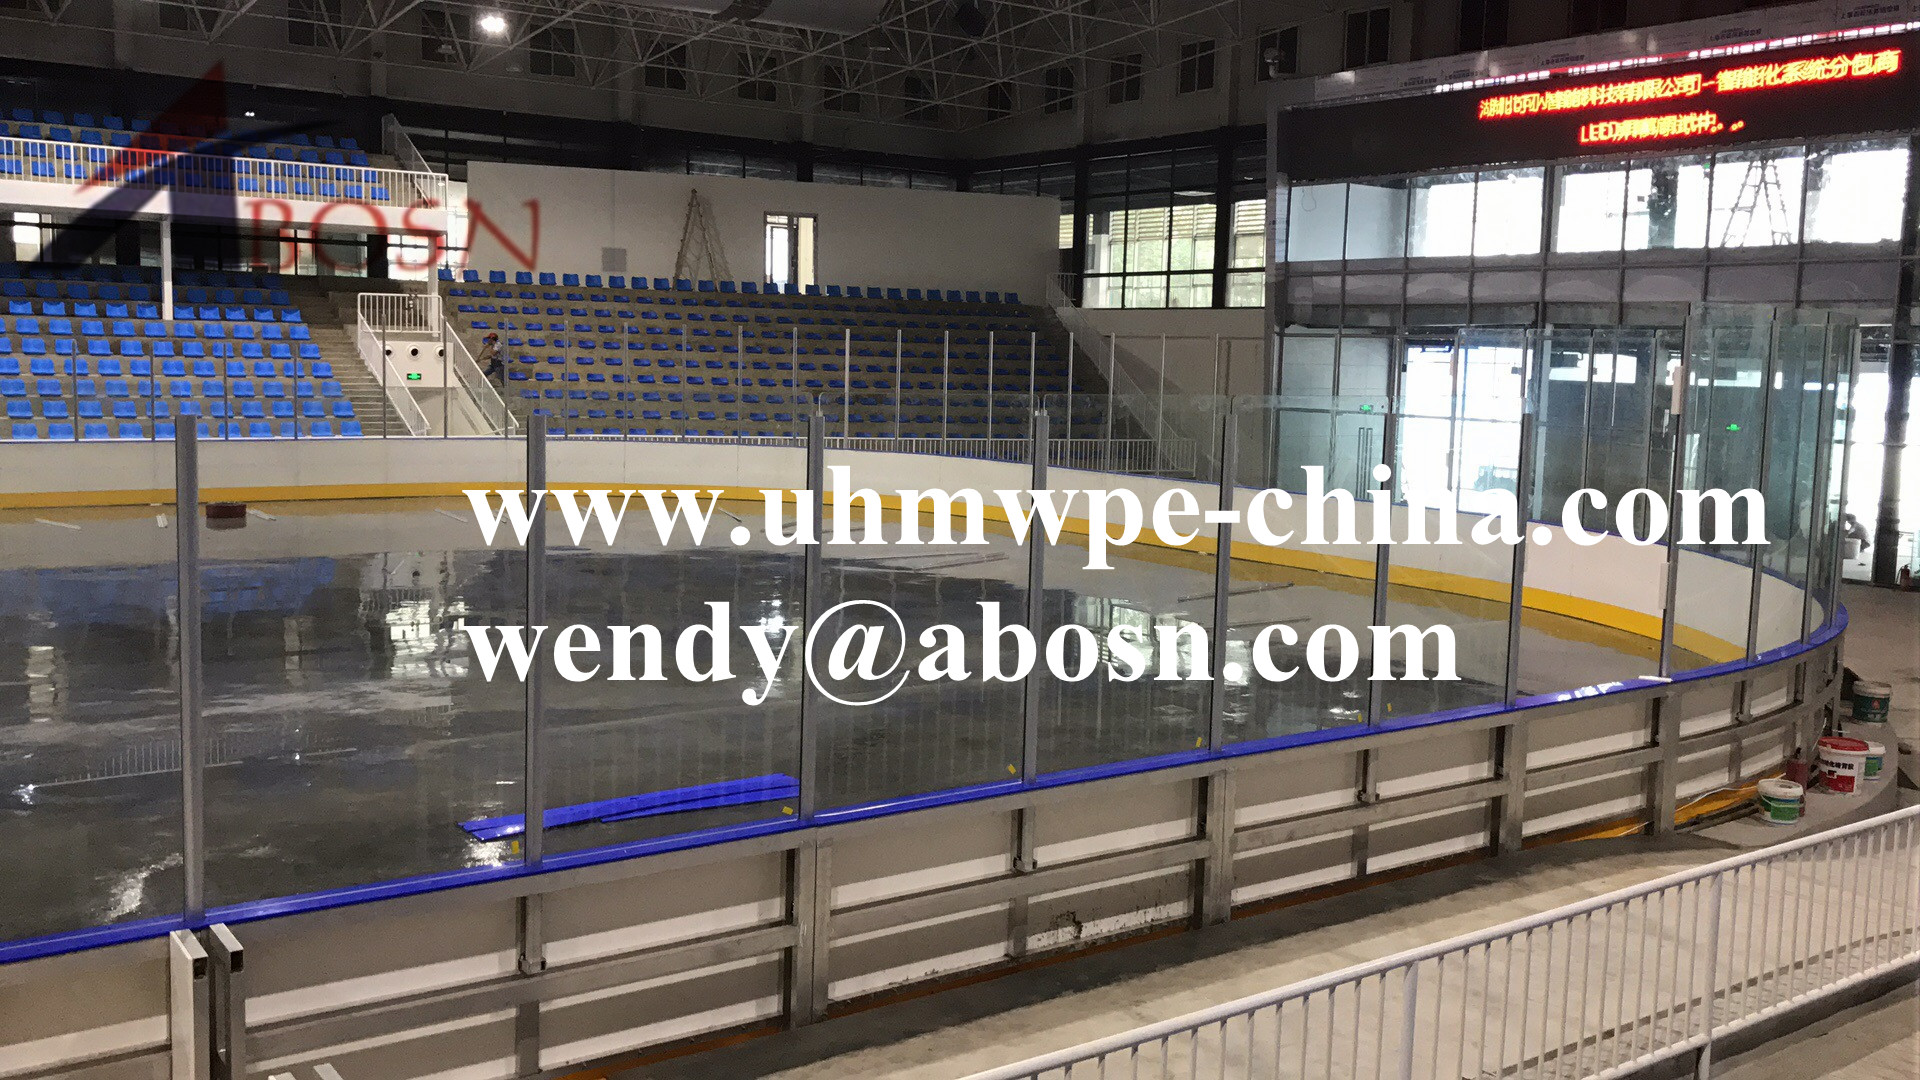 Ice Arena Dasher Board System